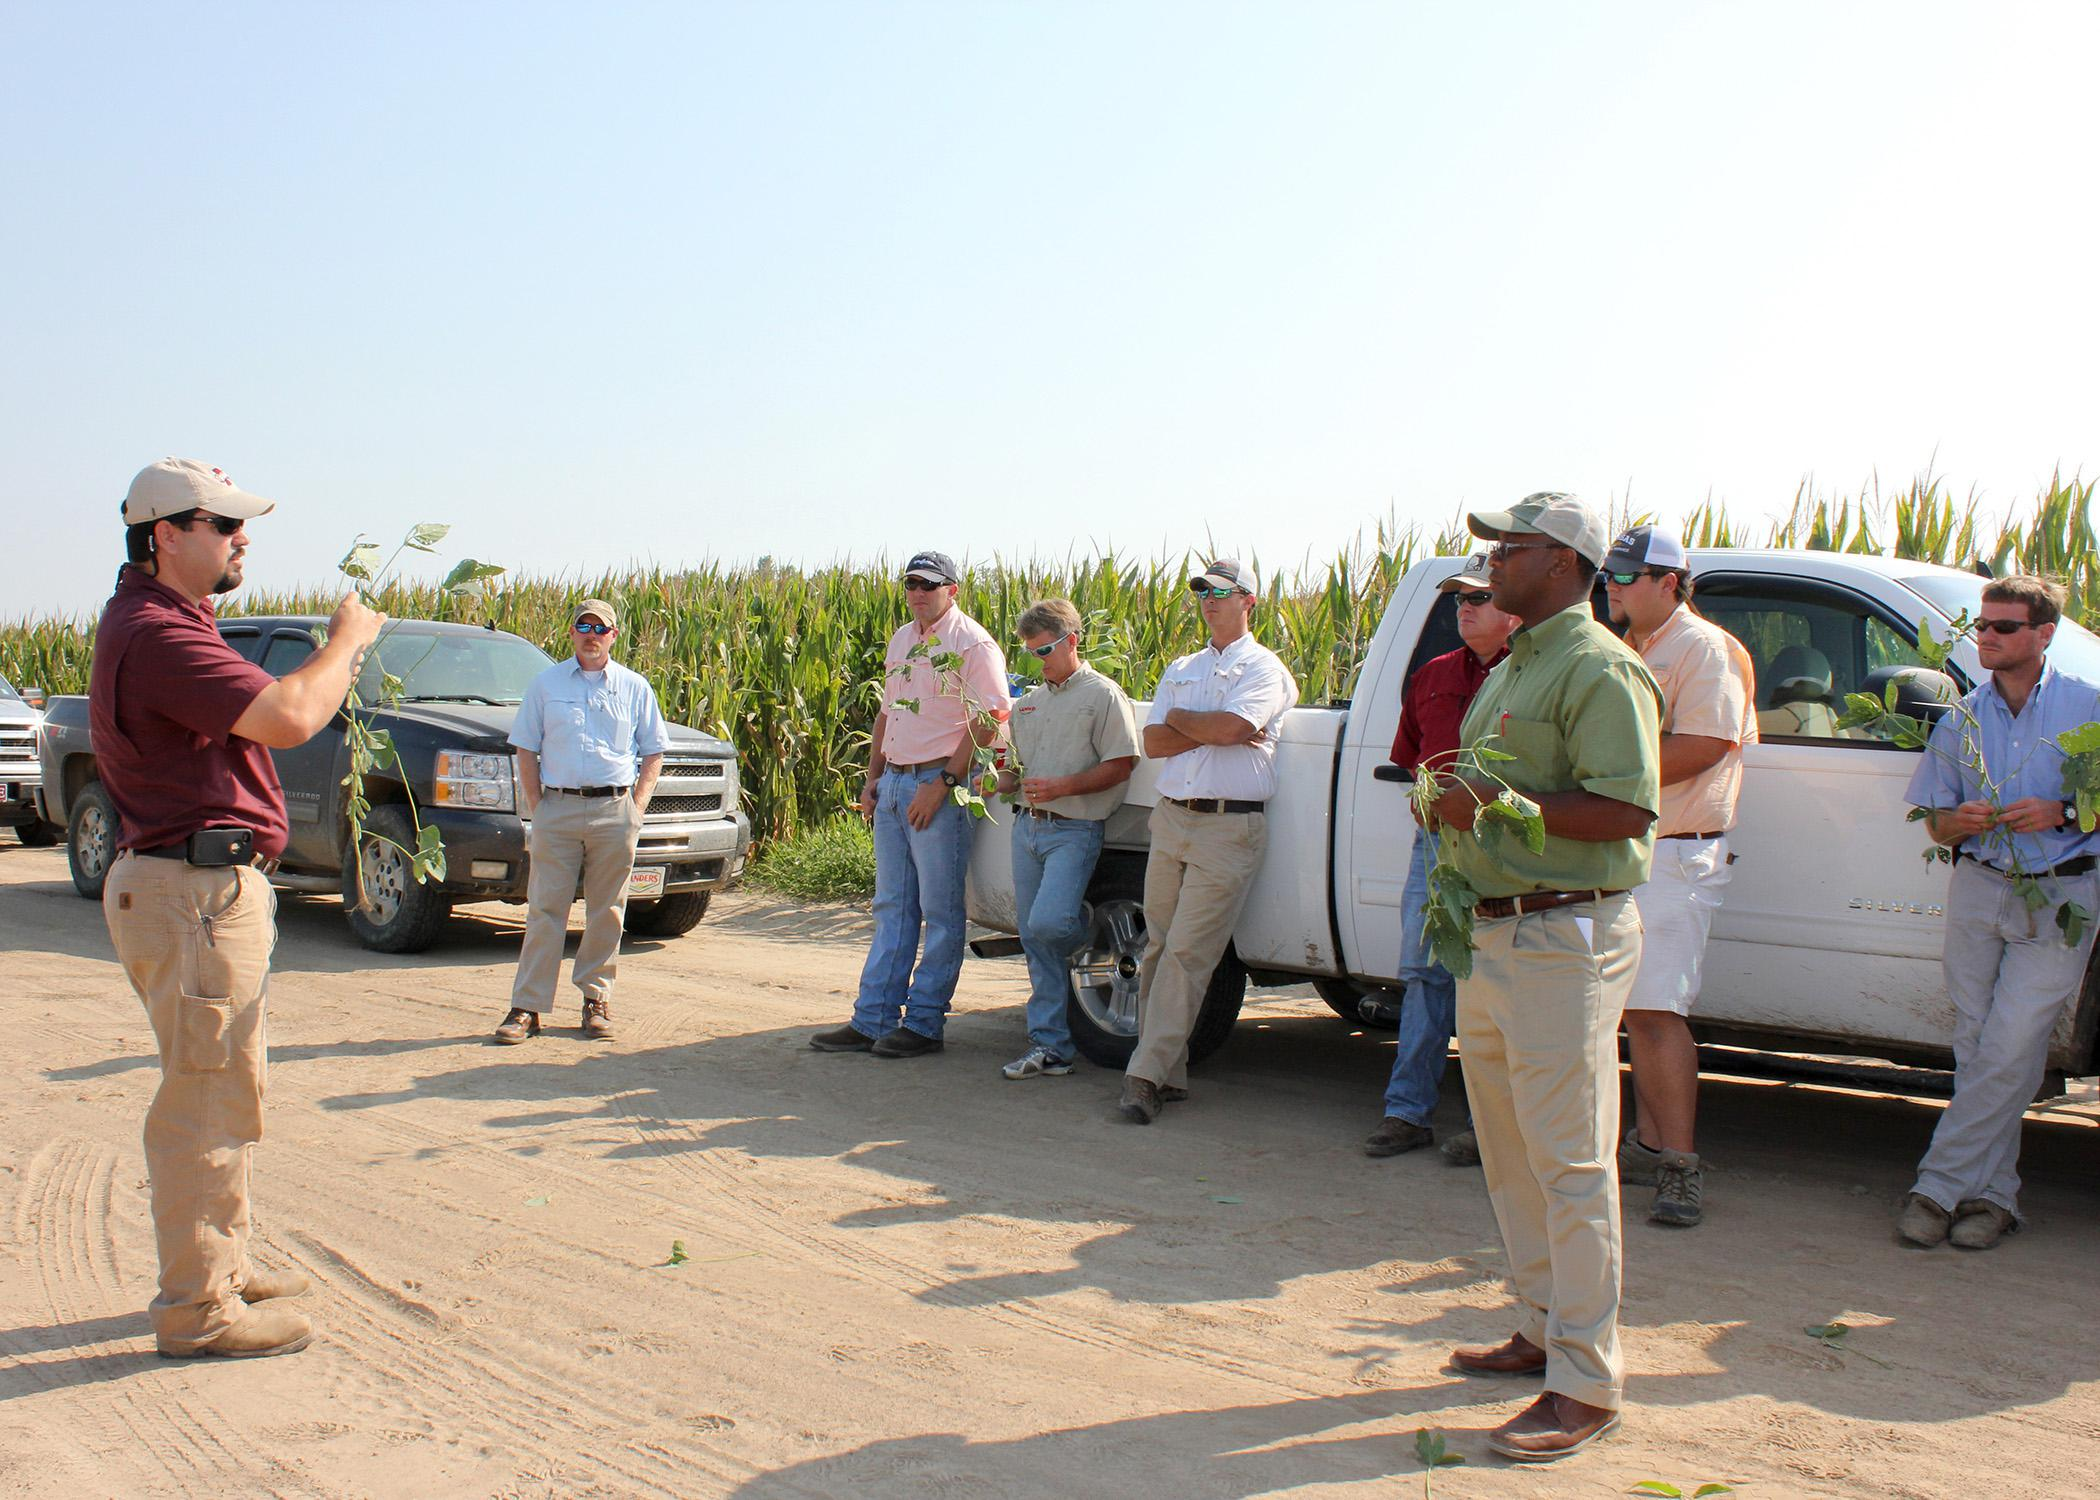 Trent Irby, left, demonstrated how to determine the maturity level of soybeans Aug. 30, 2013, at Mississippi State University's Delta Research and Extension Center in Stoneville. Producers can conserve water and save money on irrigation by correctly timing termination. (Photo by MSU Ag Communications/Bonnie Coblentz)